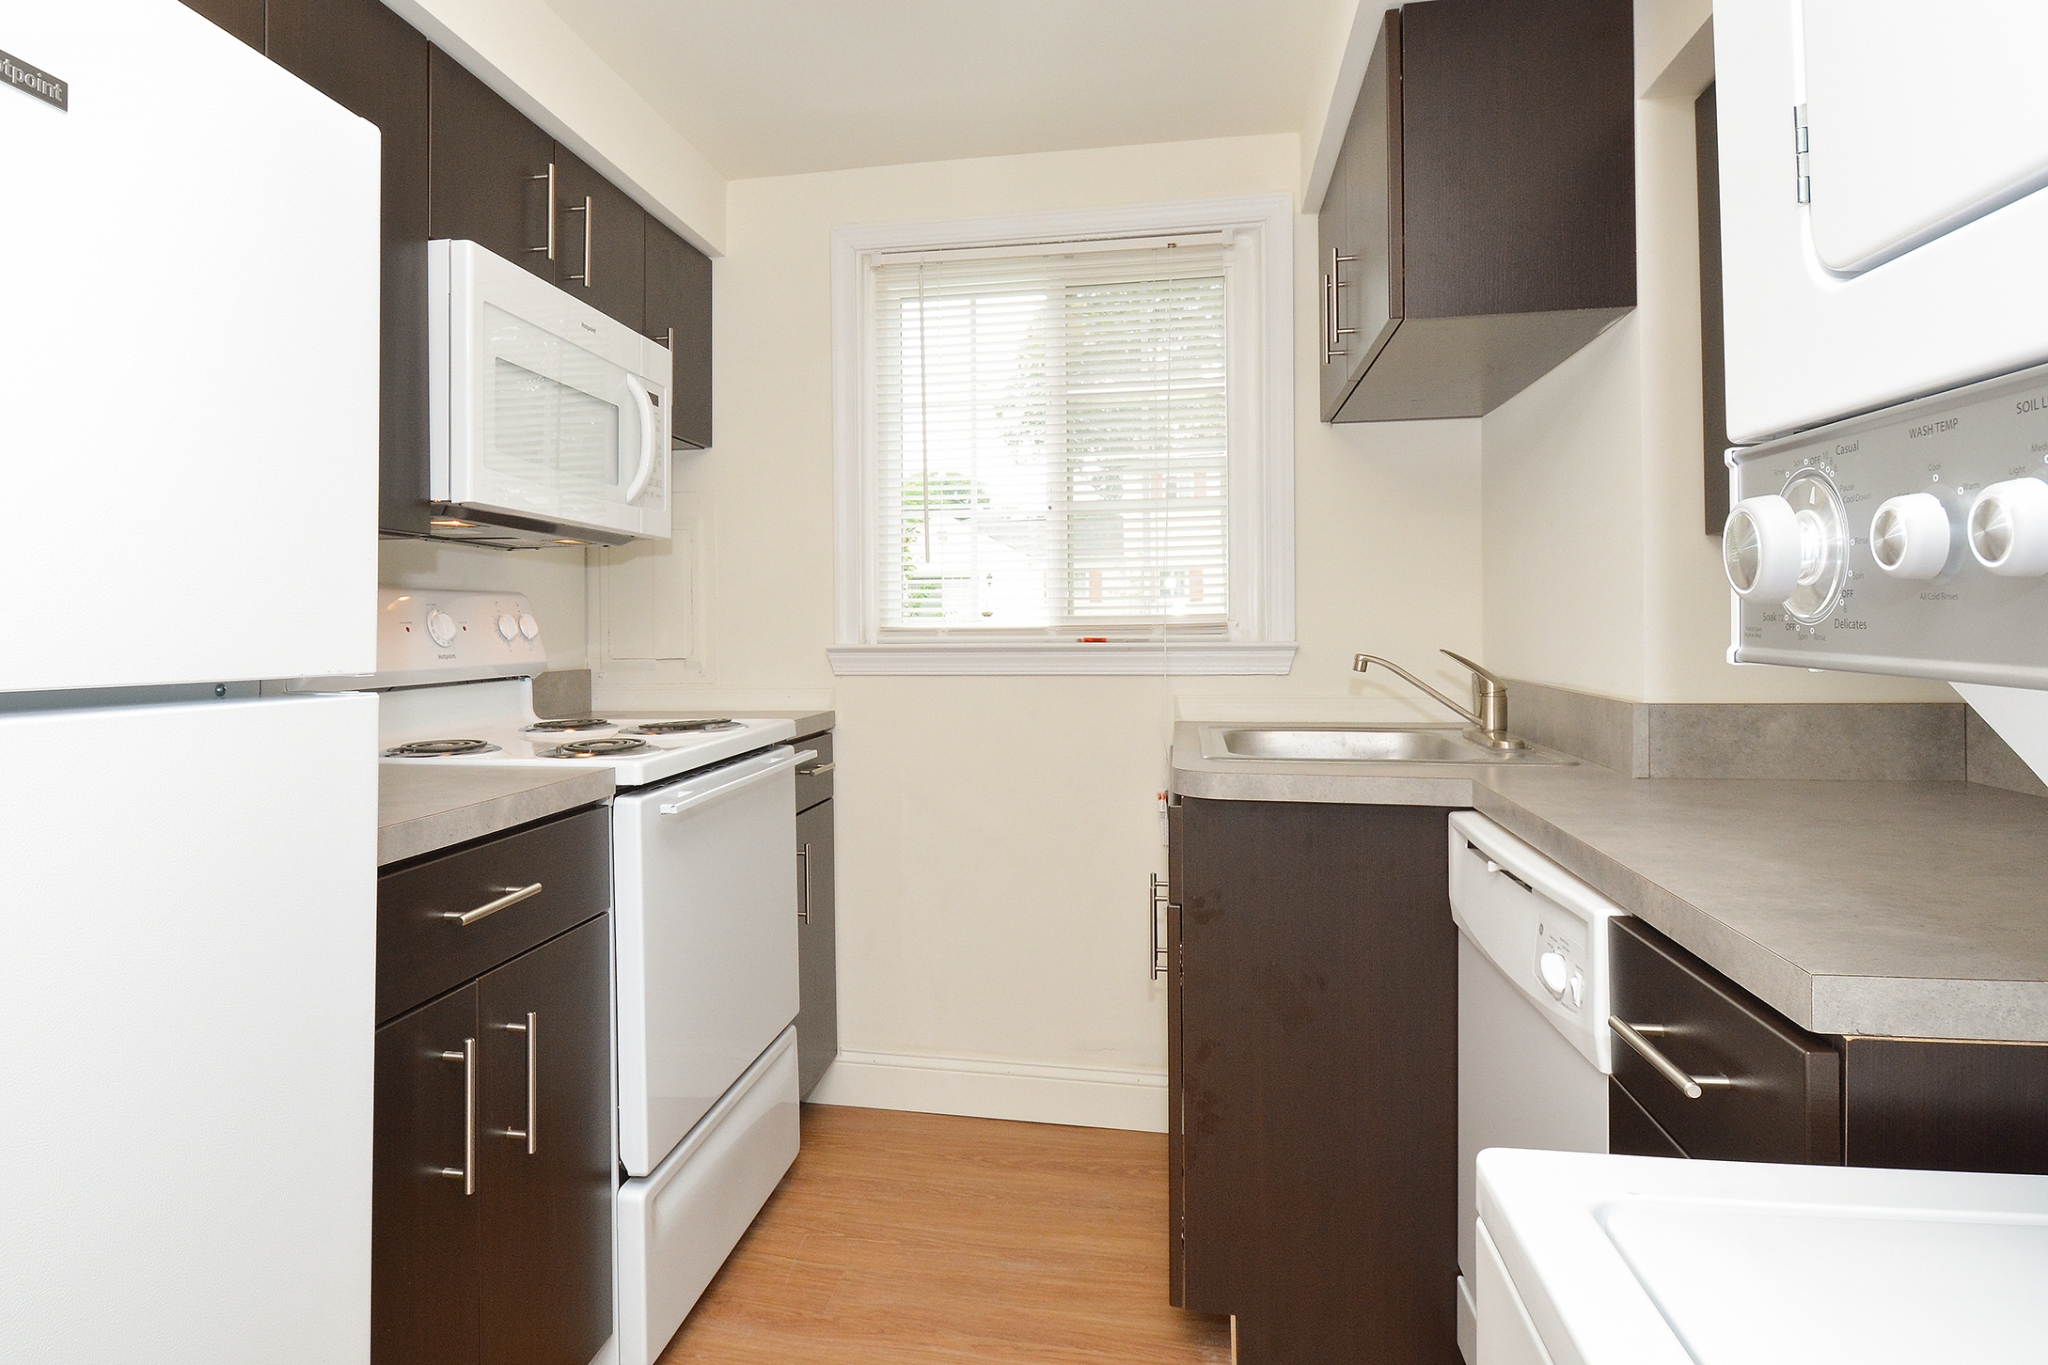 Greenville on 141 Sample Kitchen with Window and Hardwood Floors | Apartments Near Wilmington DE